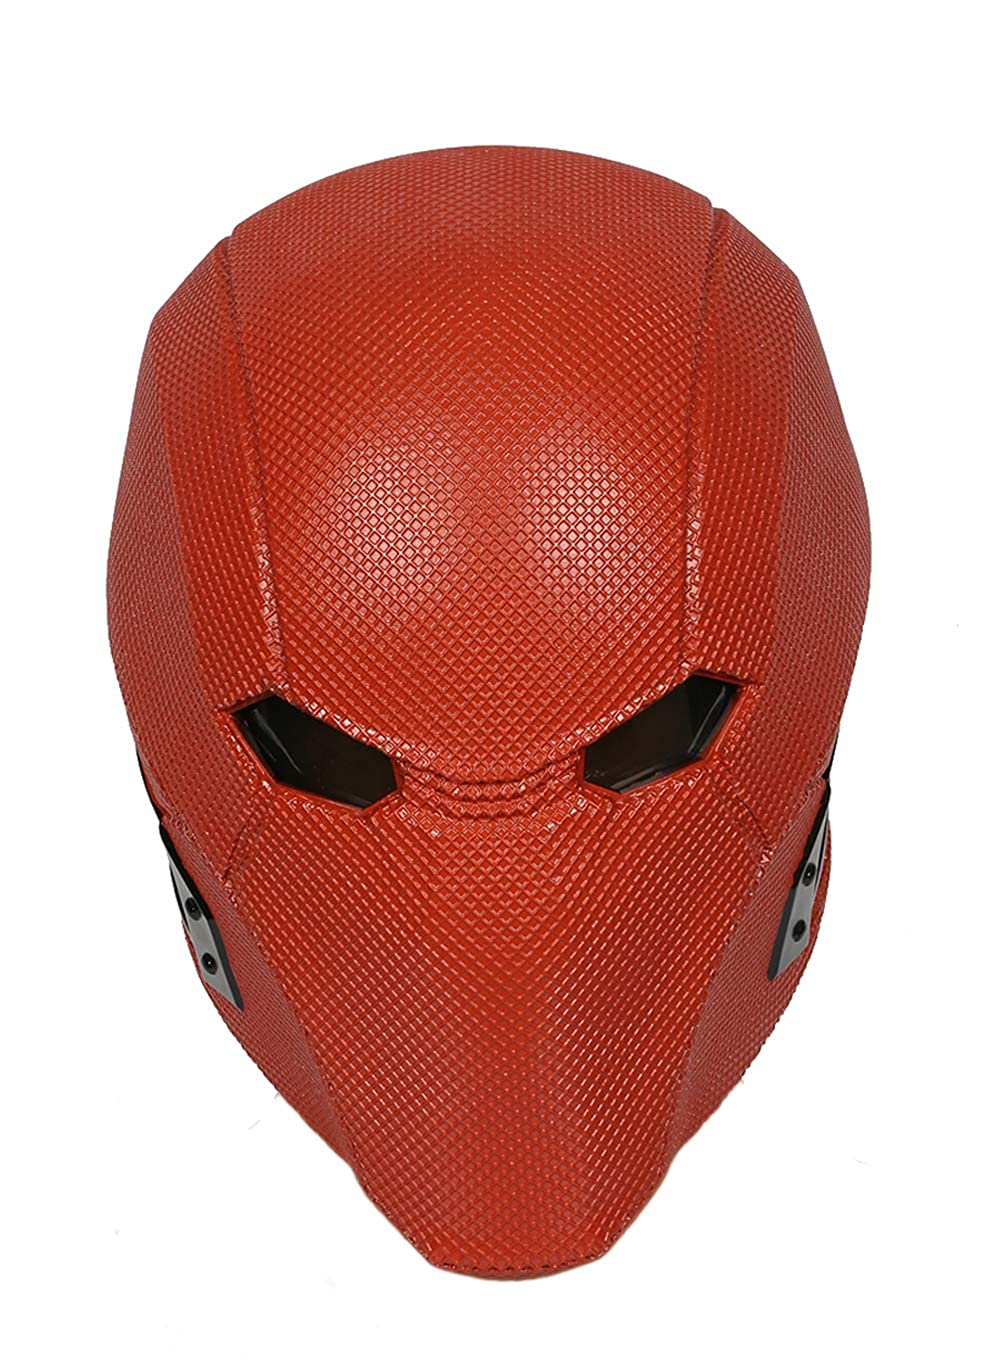 Xcoser Red Hood Mask Deluxe Helmet Full Head Adult Halloween Cosplay Costume Accessory Prop xcoser®